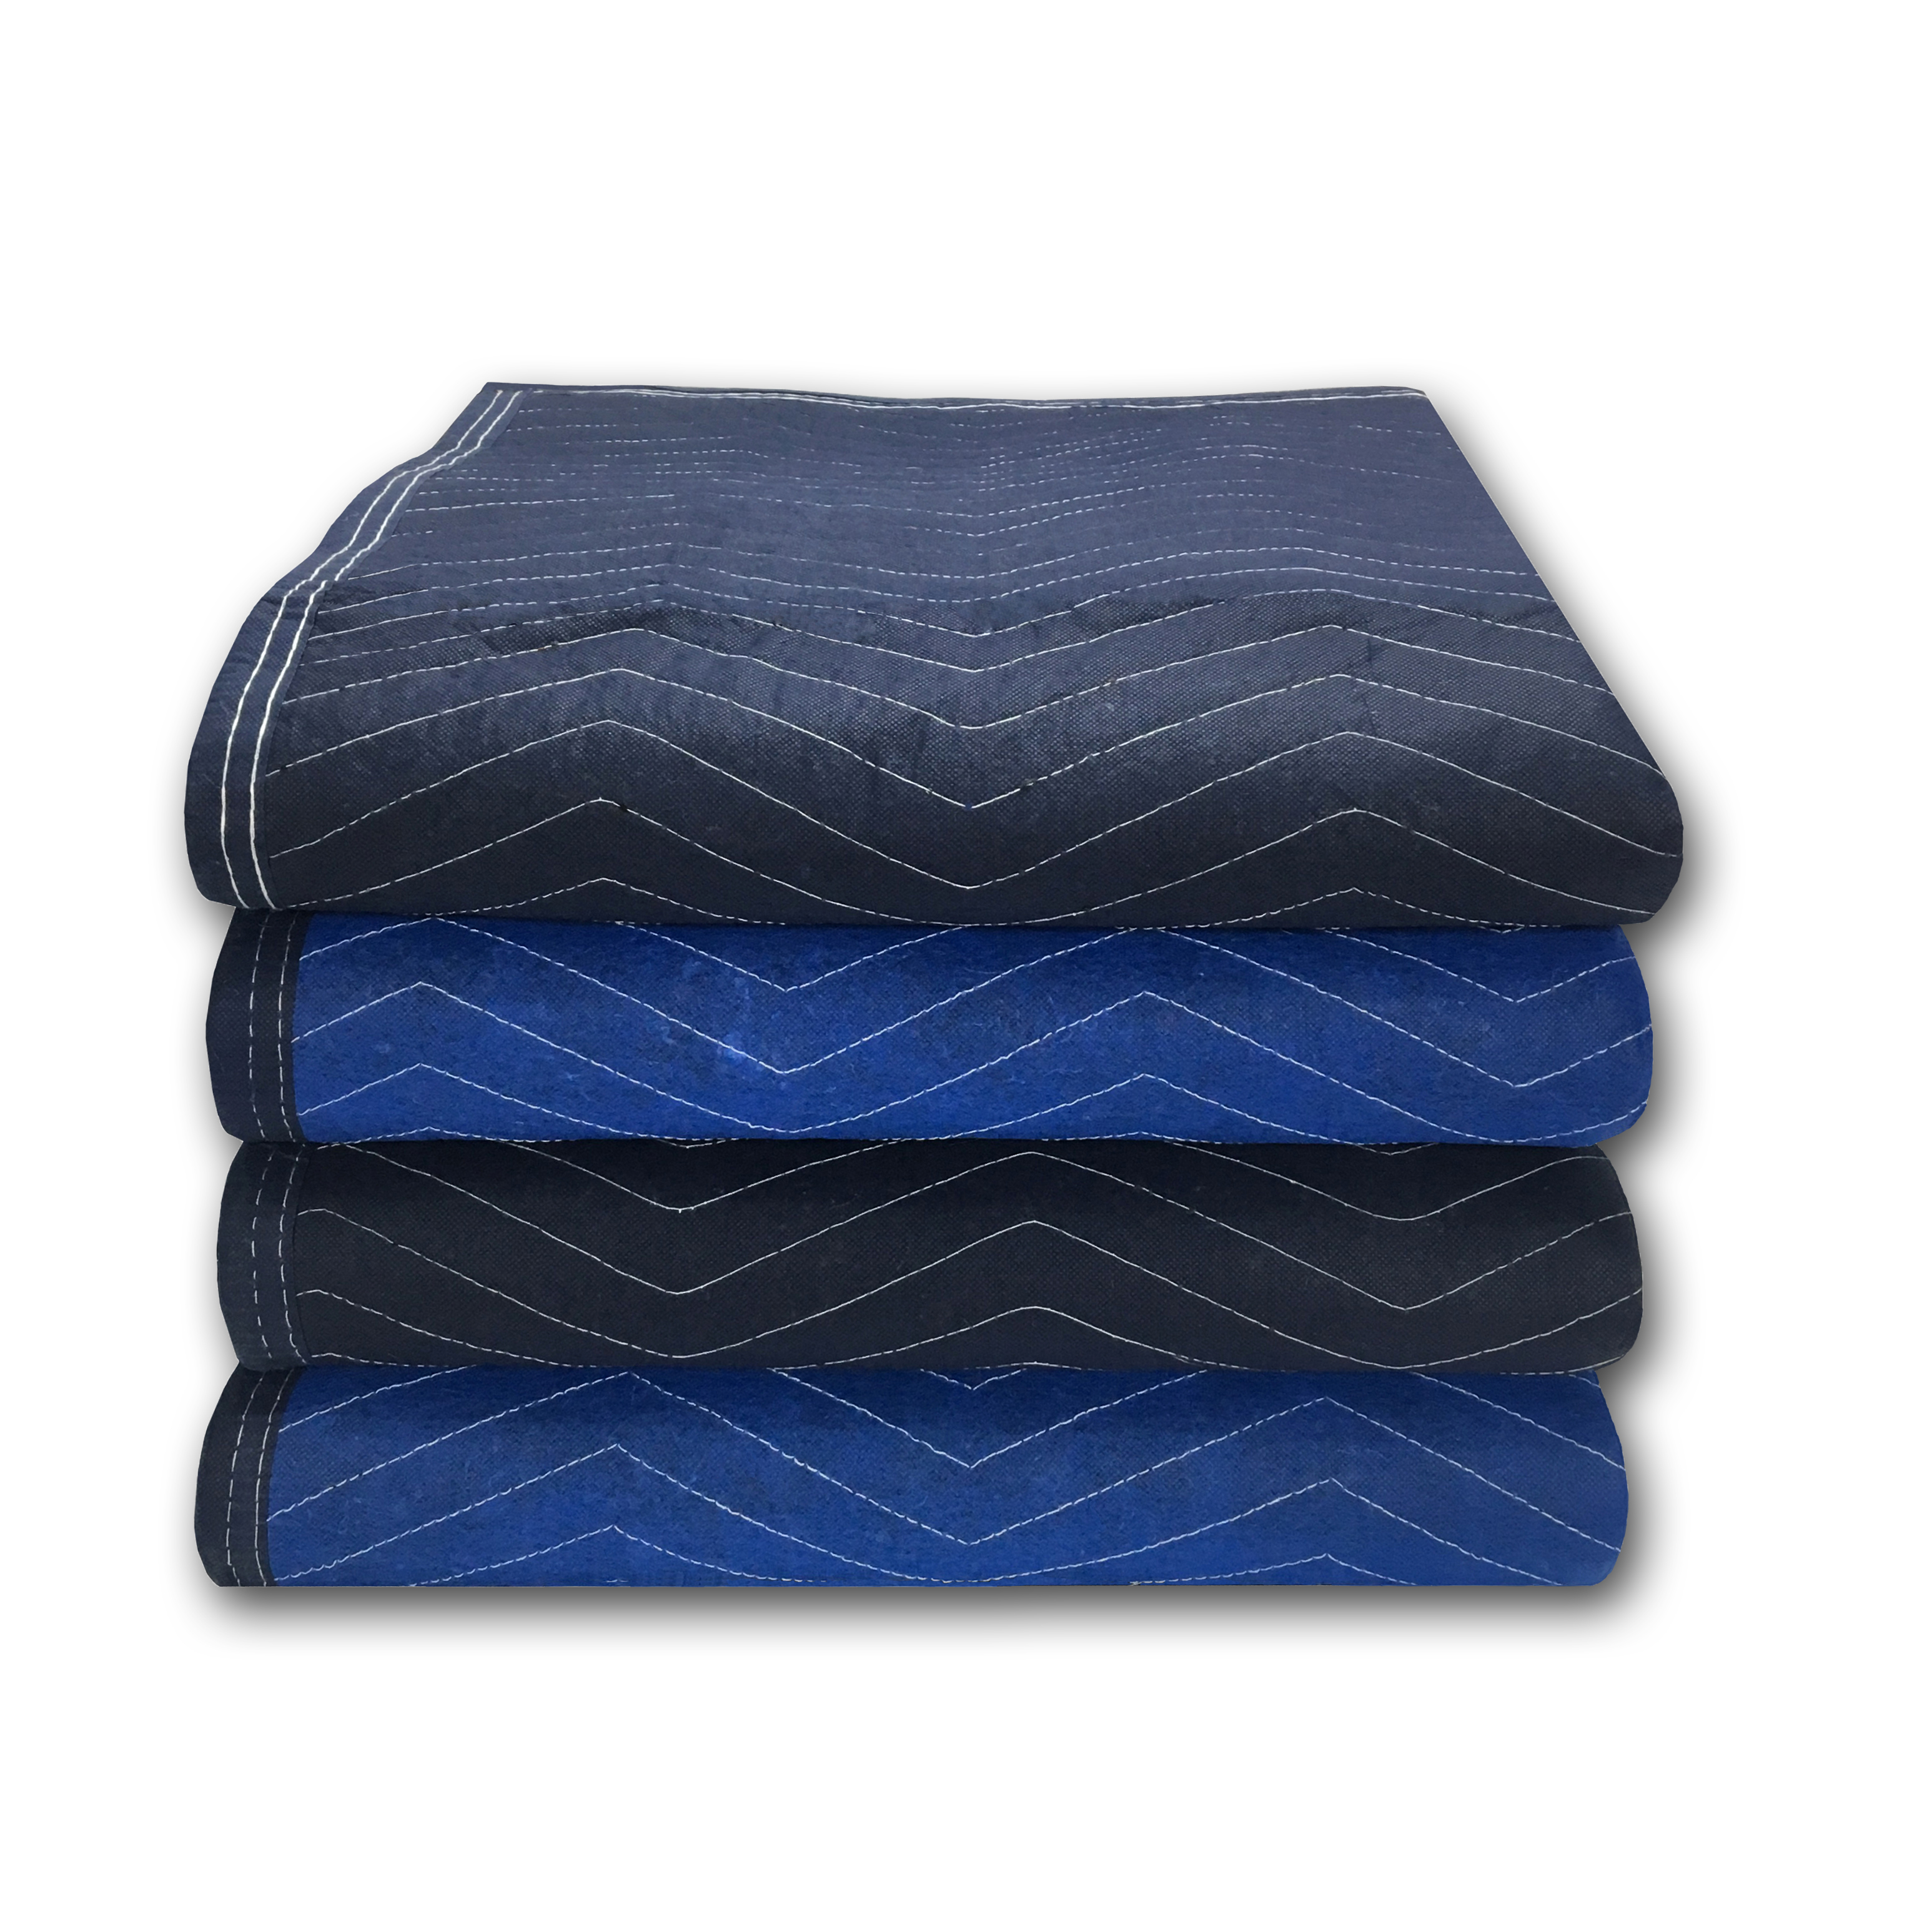 Uboxes Pro Mover Moving Blankets, 72 x 80 in, 6.83lbs each, 4 Pack